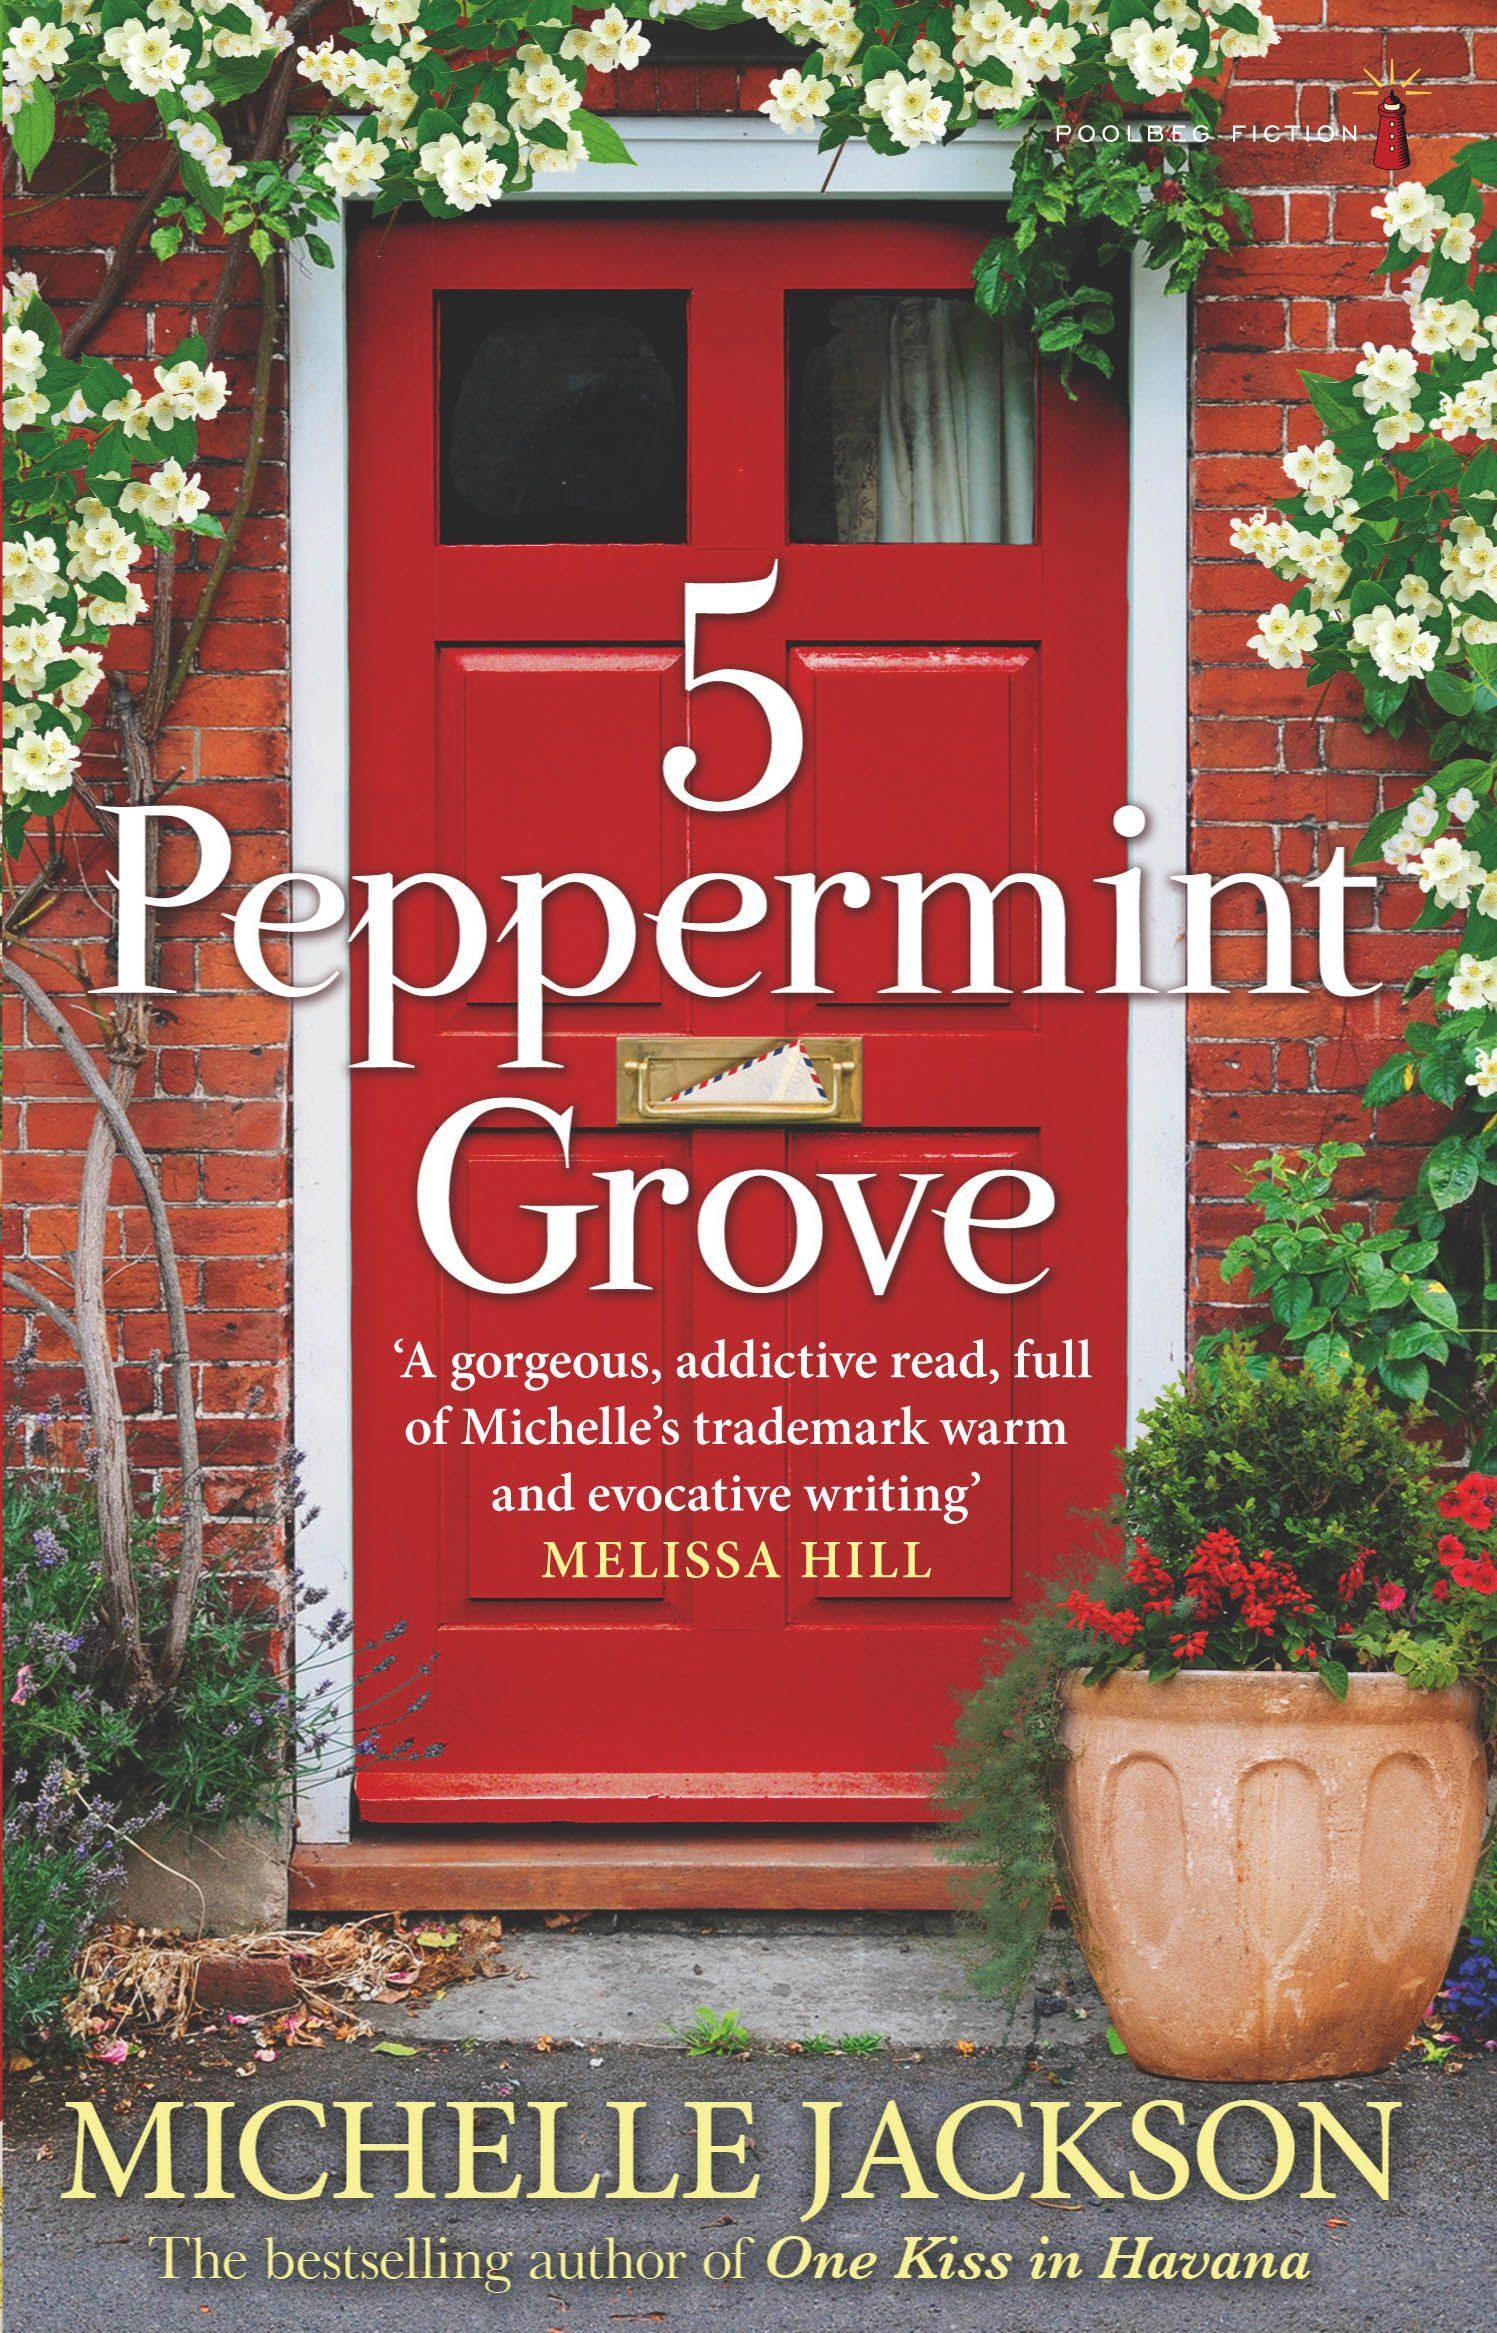 5 Peppermint Grove by Michelle Jackson. Sometimes suburban bliss isn't all that it seems!